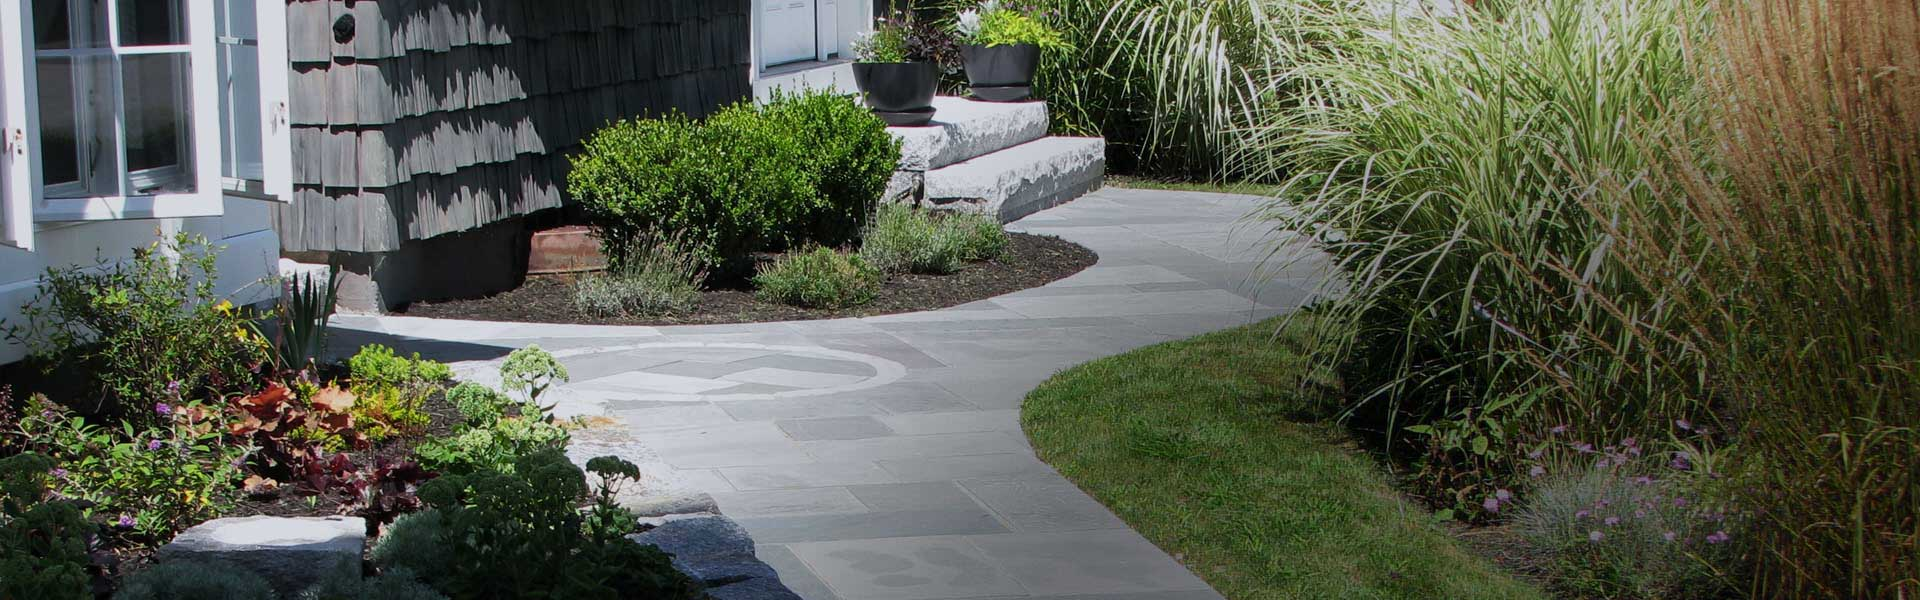 Bluestone walkway with natural stone wall